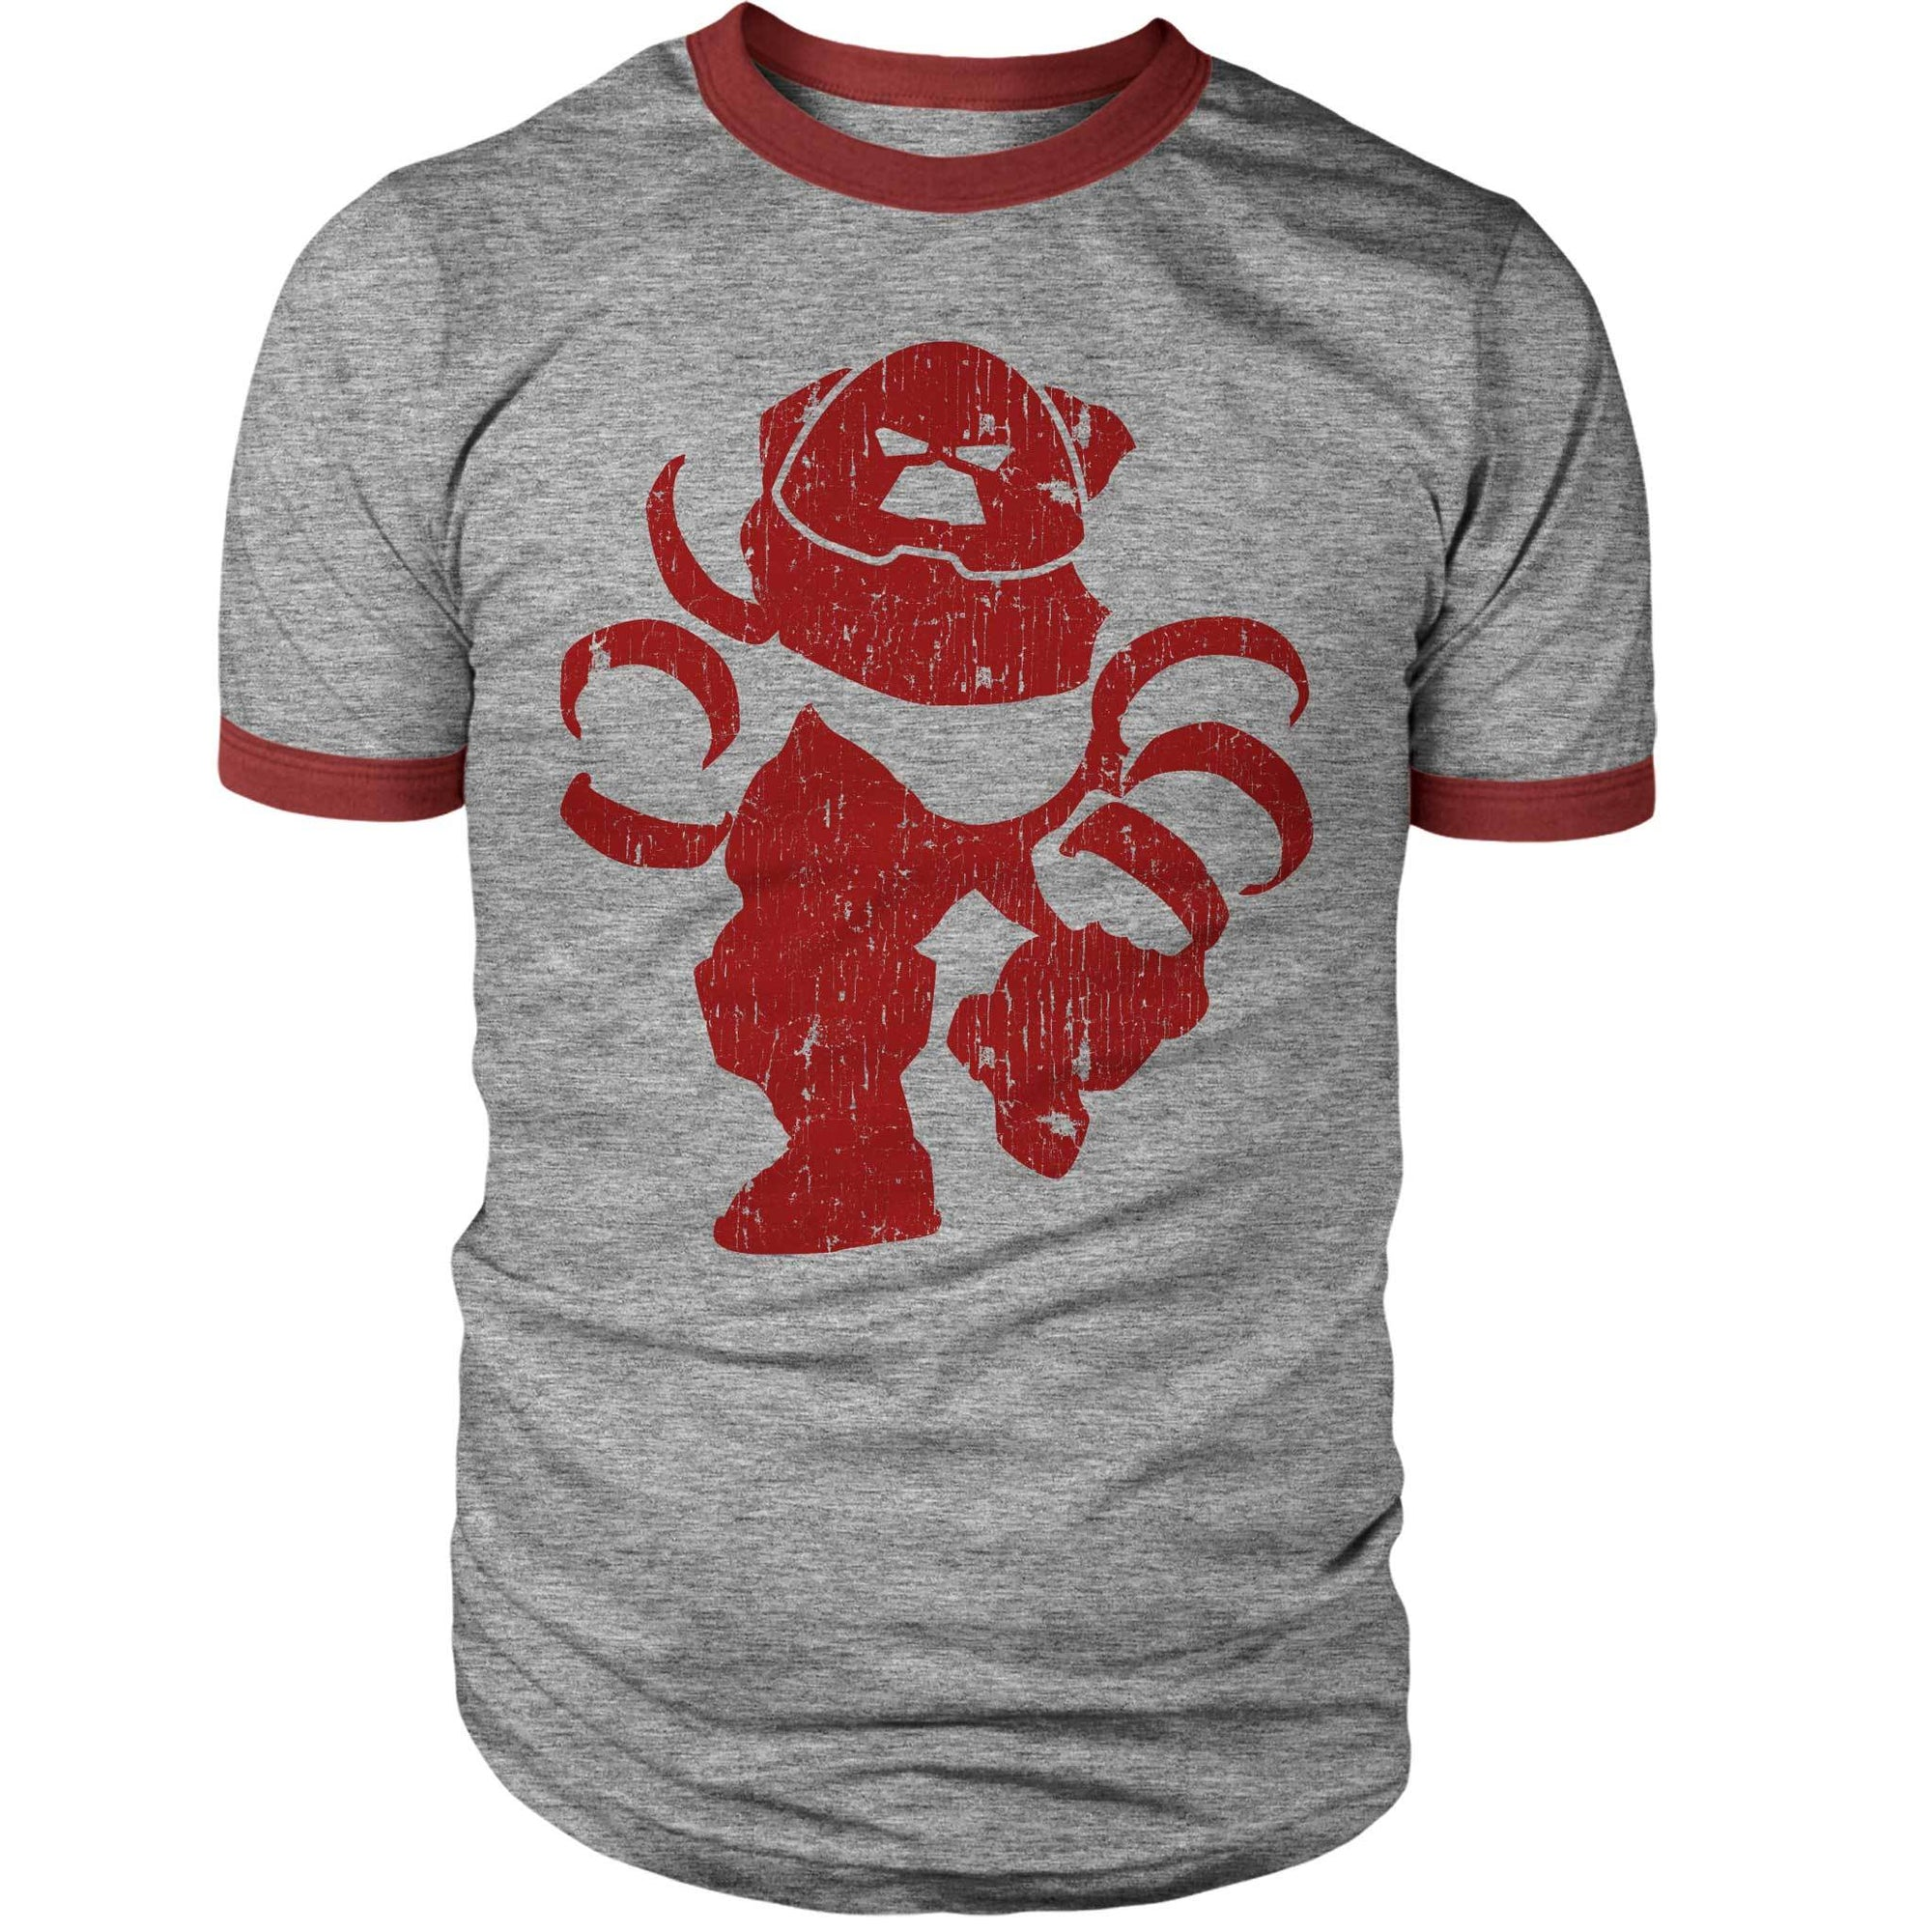 Big Crimson Vintage Ringer Shirt-Ringers-Shirtasaurus-S-Heather Red-Shirtasaurus